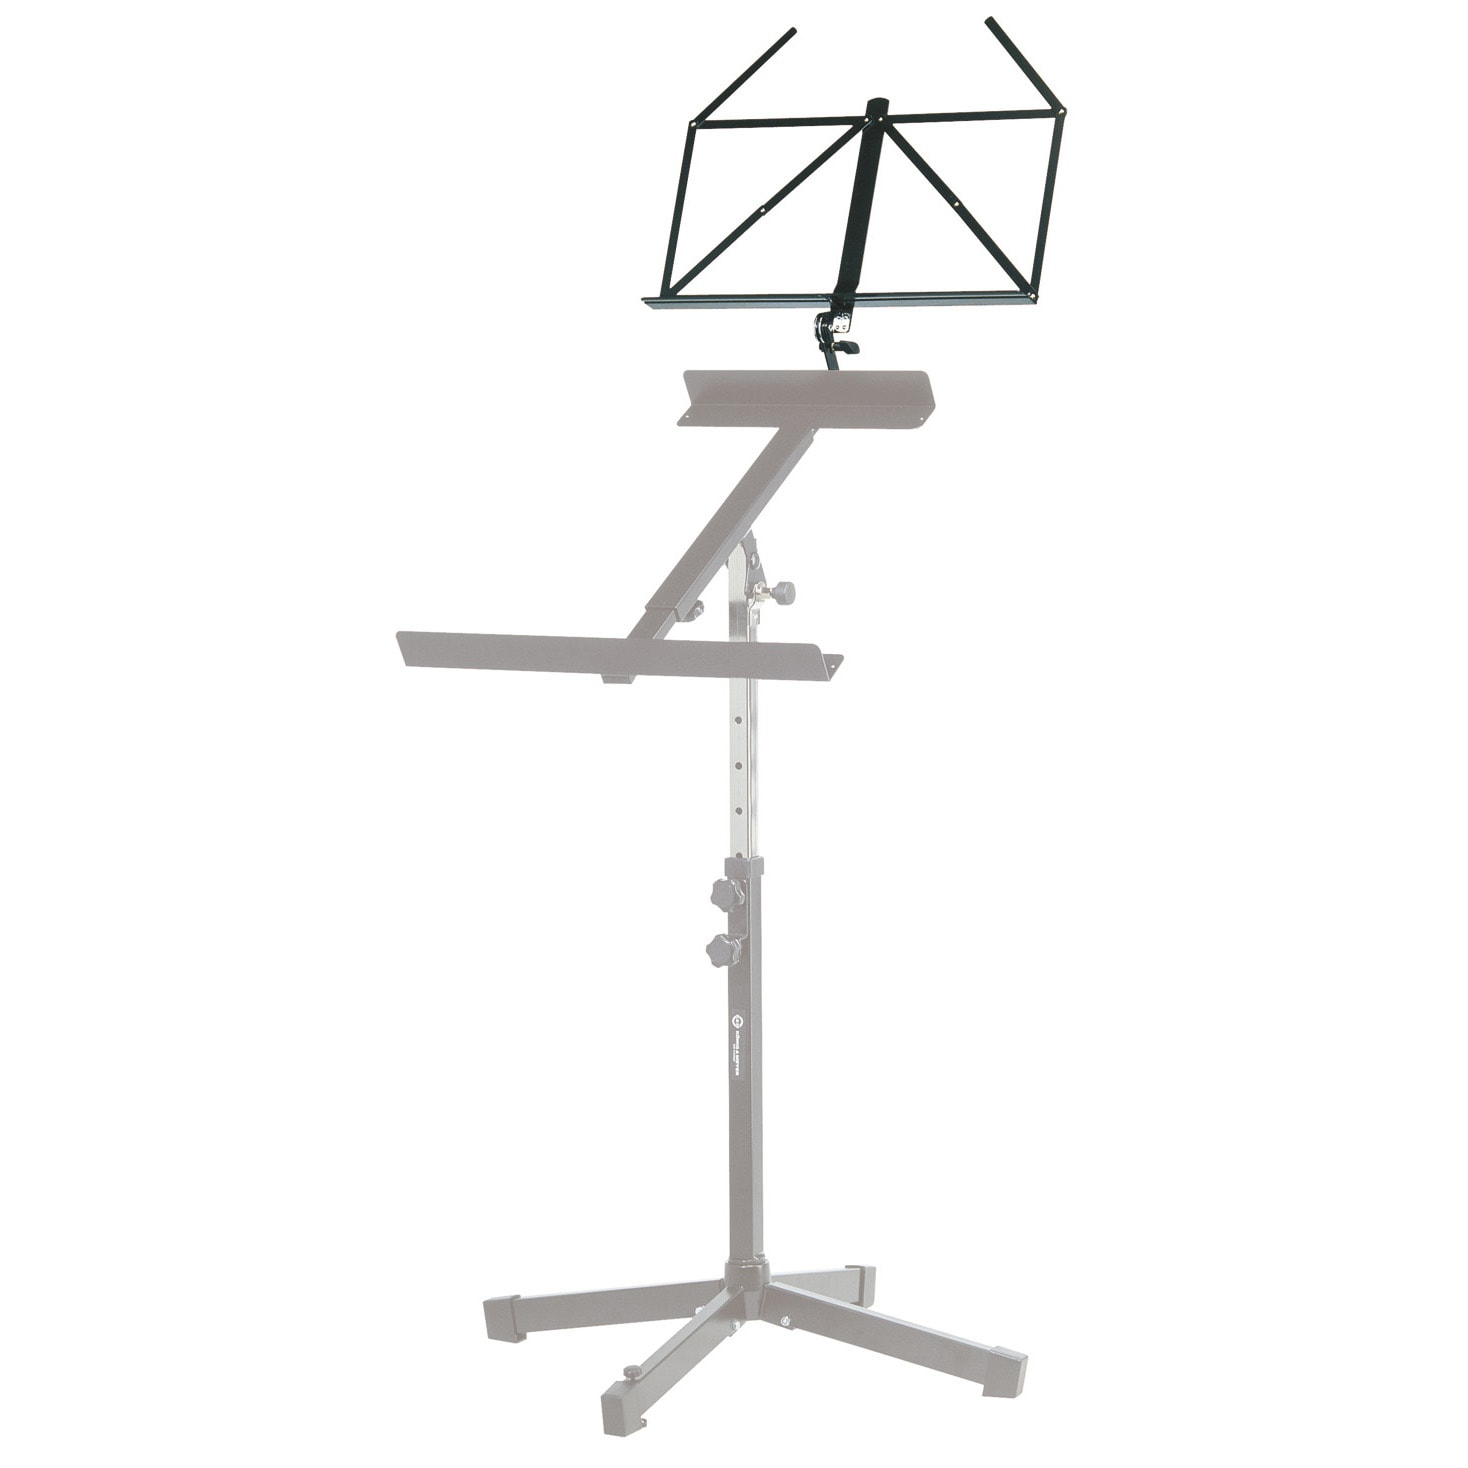 KM11515 - Music holder